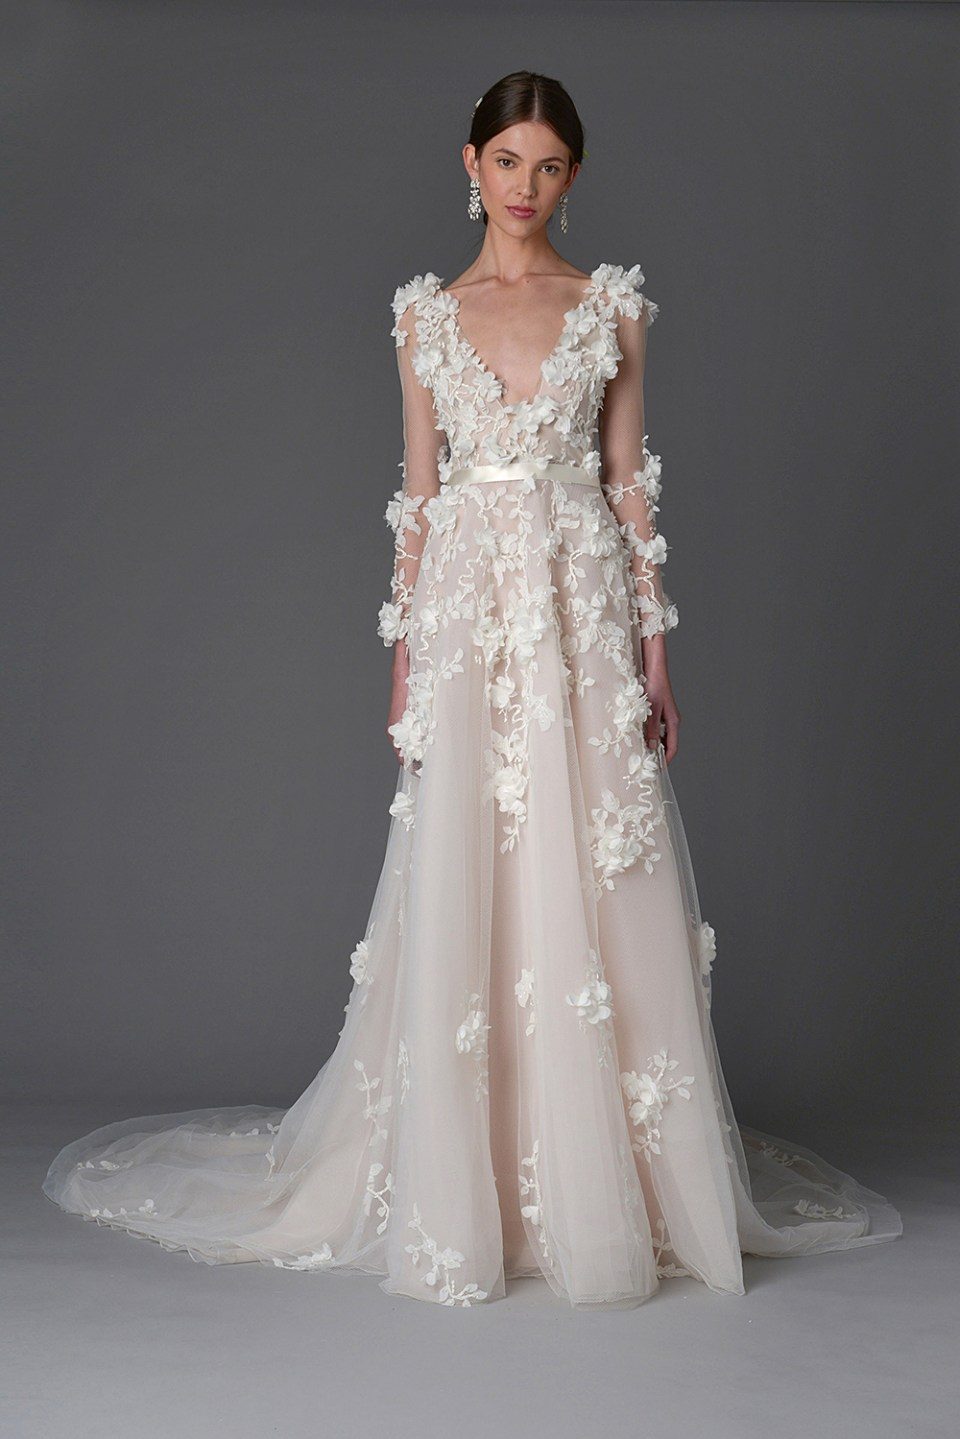 Orchid - Marchesa Spring 2017 Bridal Collection. www.theweddingnotebook.com